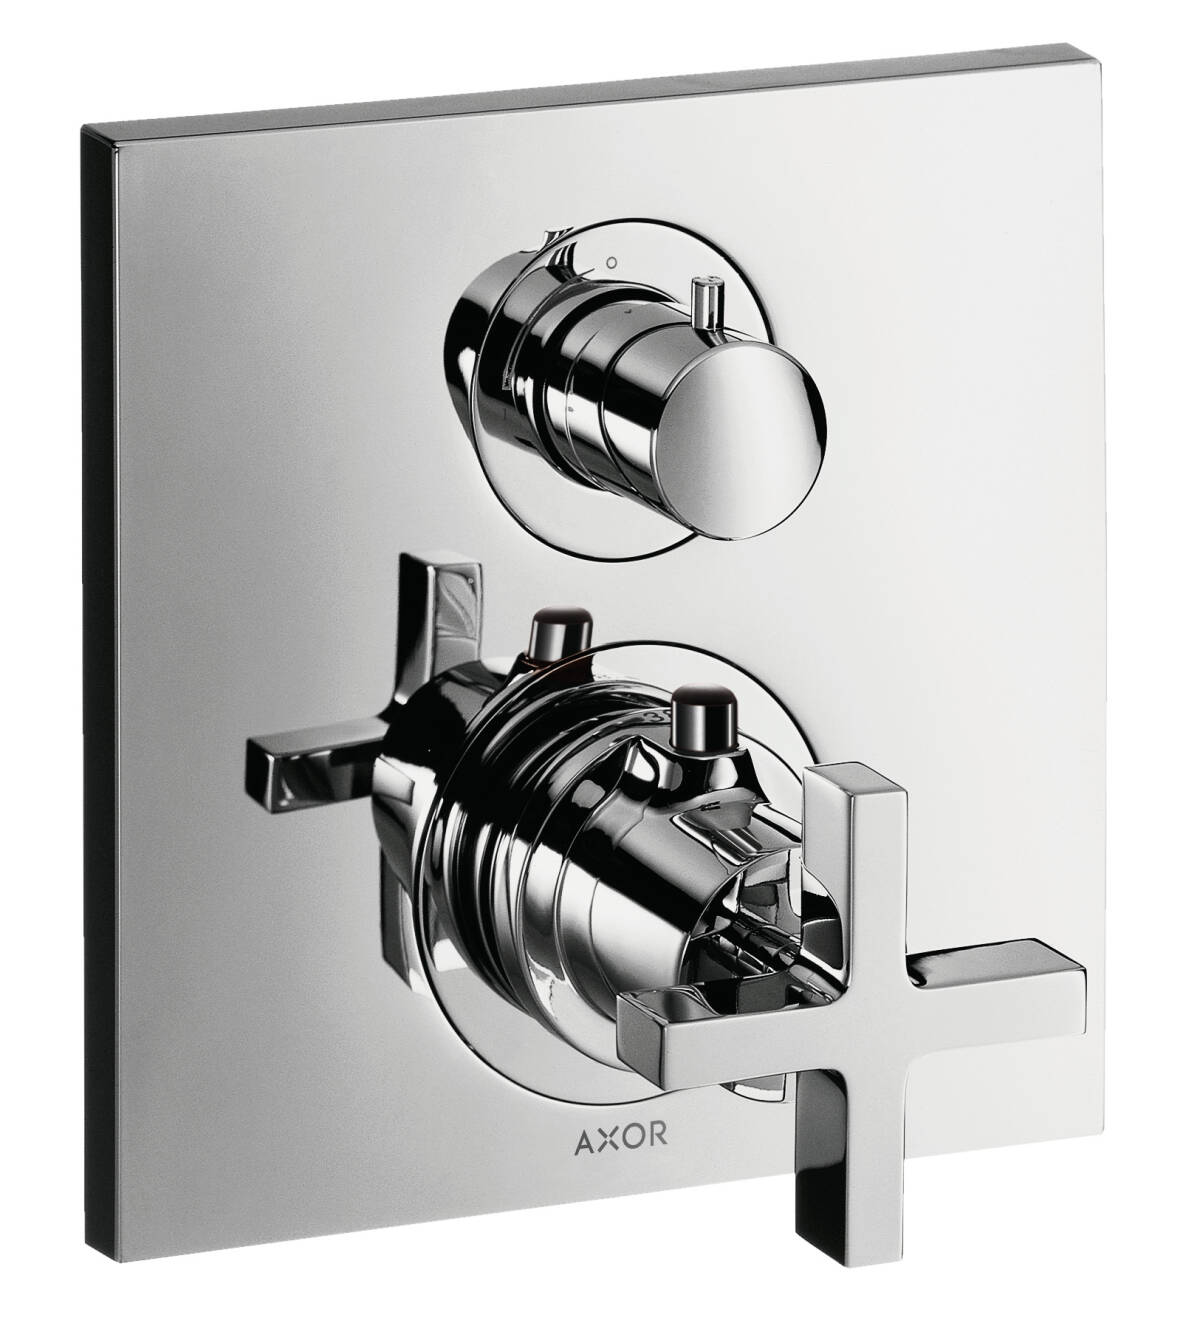 Thermostat for concealed installation with shut-off/ diverter valve and cross handle, Polished Black Chrome, 39725330